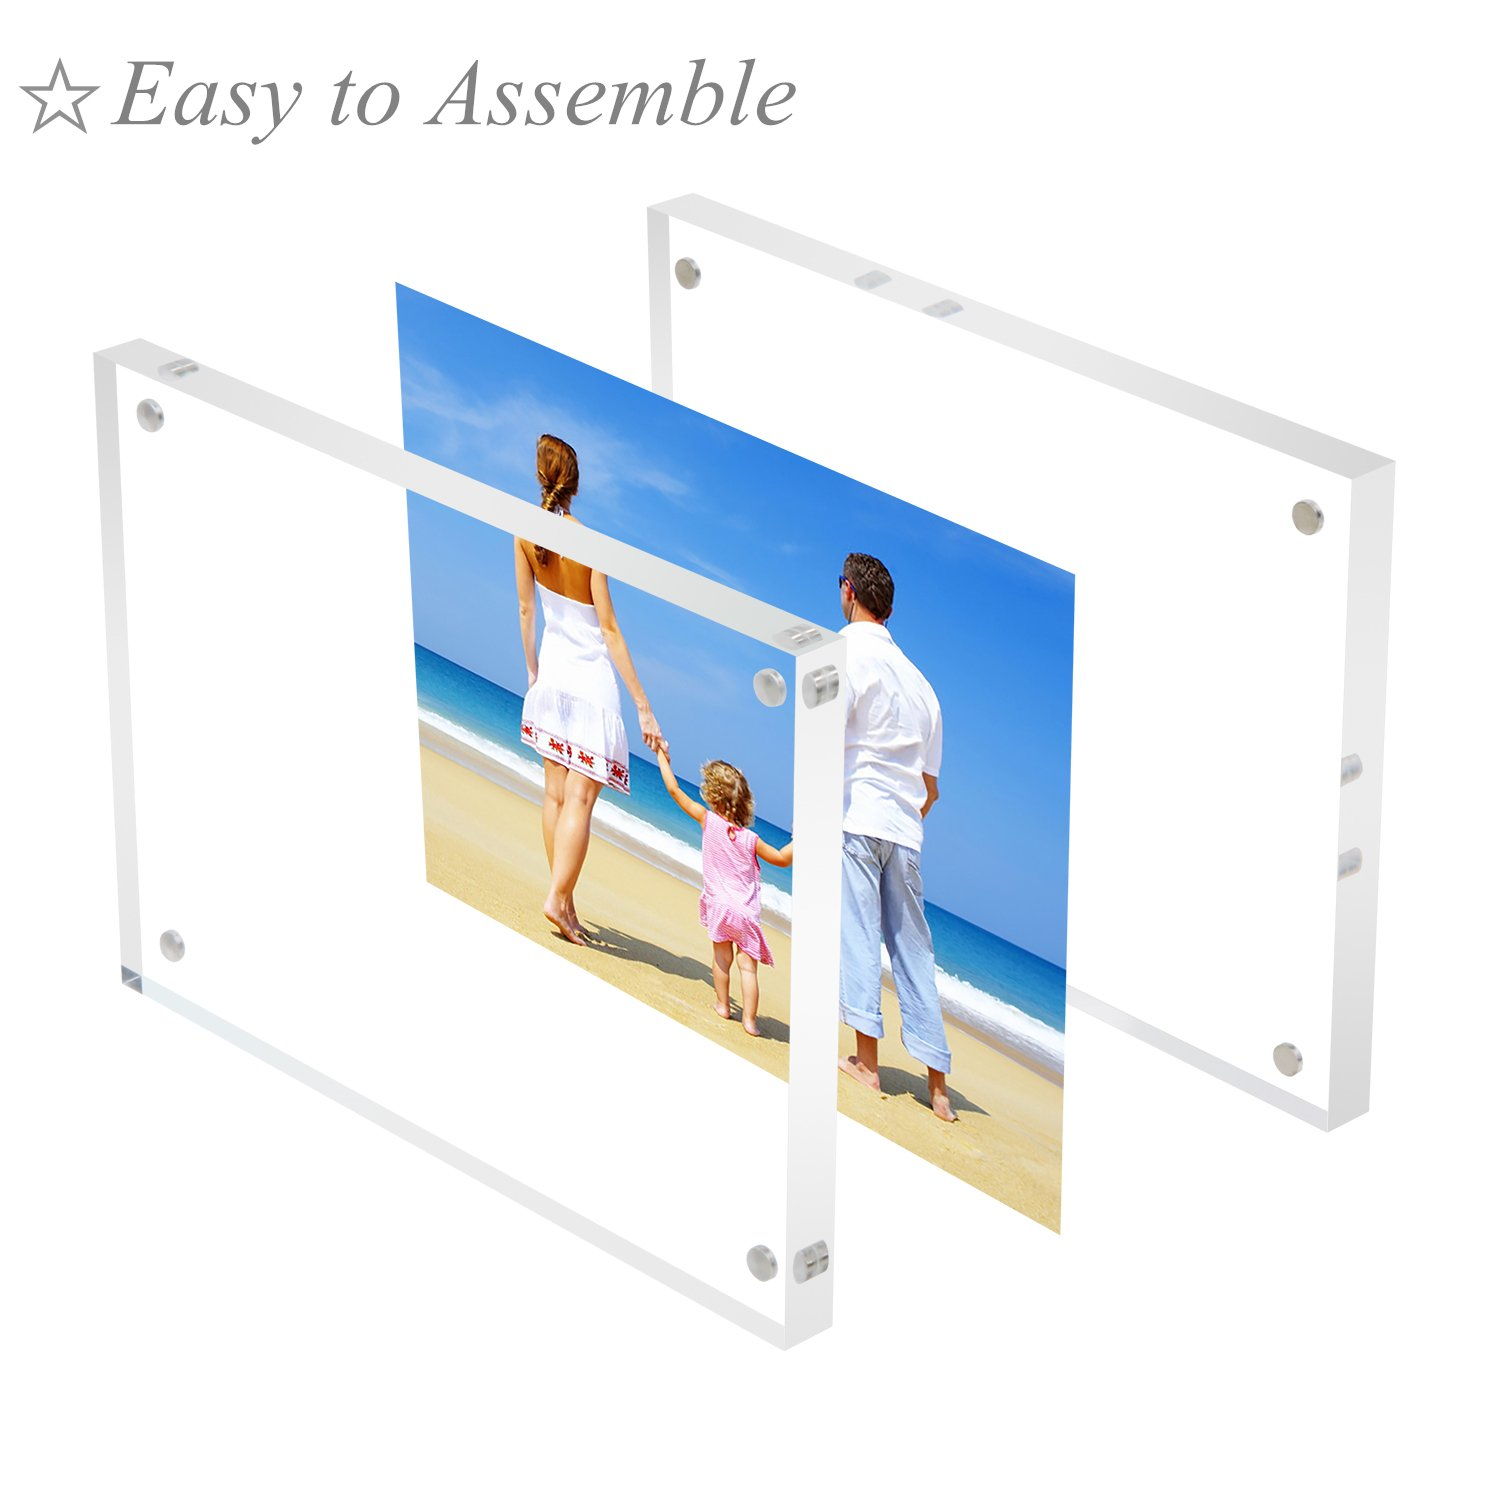 Amazon bulk acrylic picture frames 4x6 clear double sided amazon bulk acrylic picture frames 4x6 clear double sided block set retail gift box package desktop frameless acrylic photo frame 5 pack jeuxipadfo Images